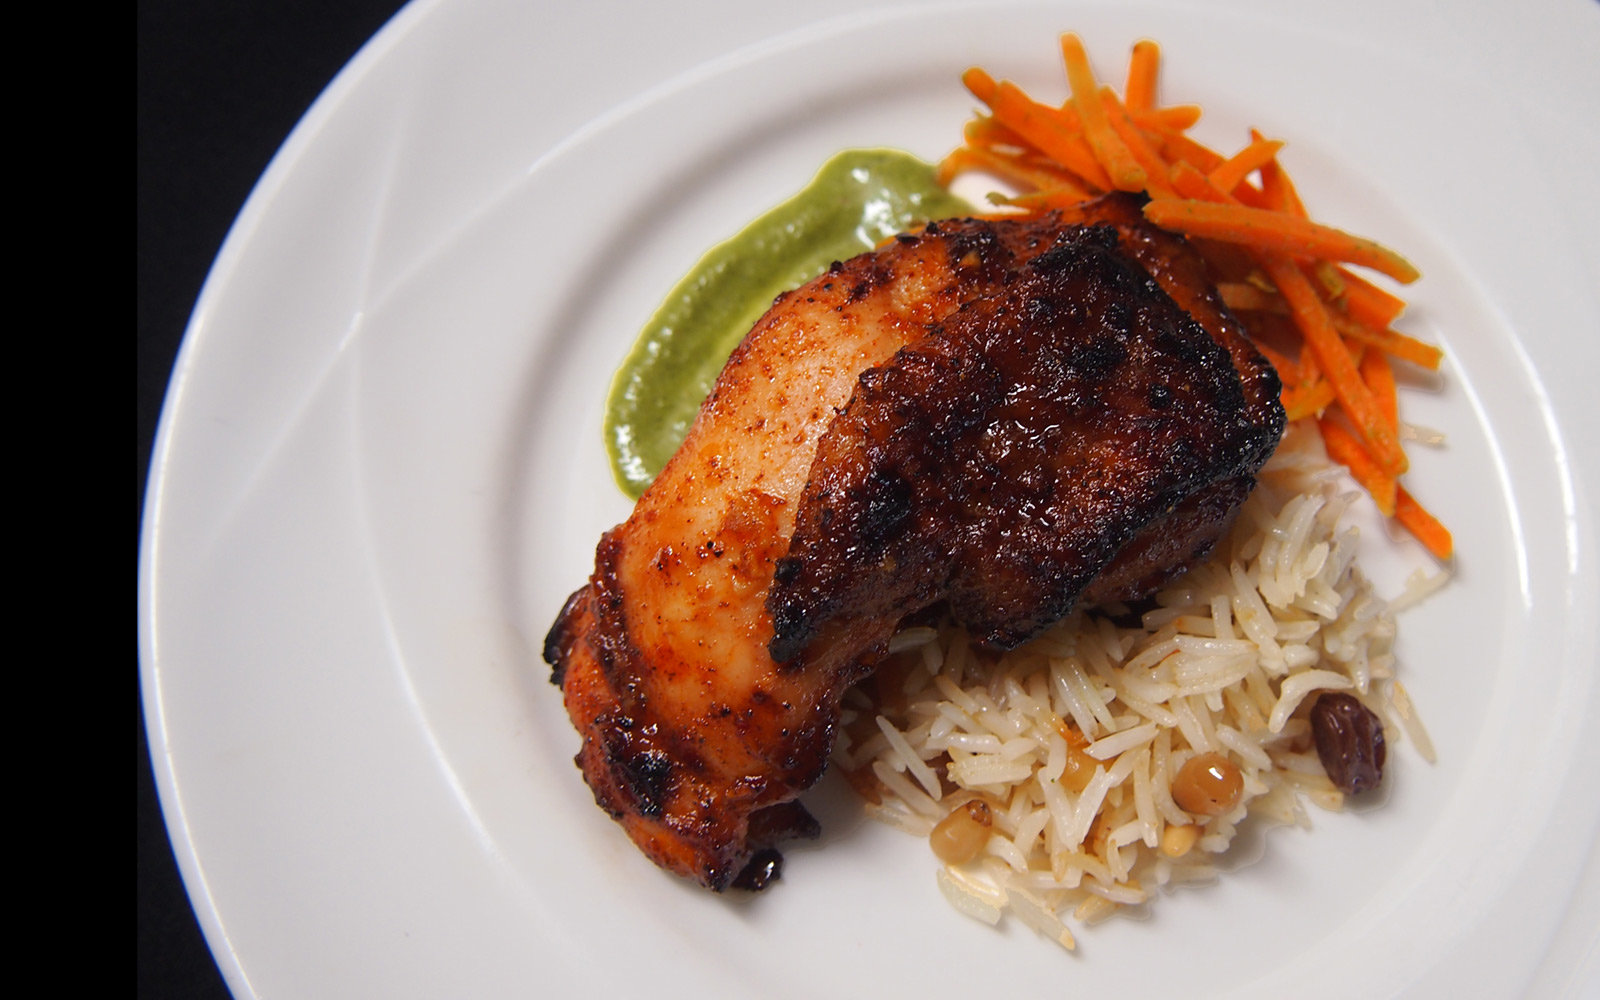 North African Style Honey Roasted Chicken with Lebanese Rice, Dining Hall, University of California, Los Angeles, California